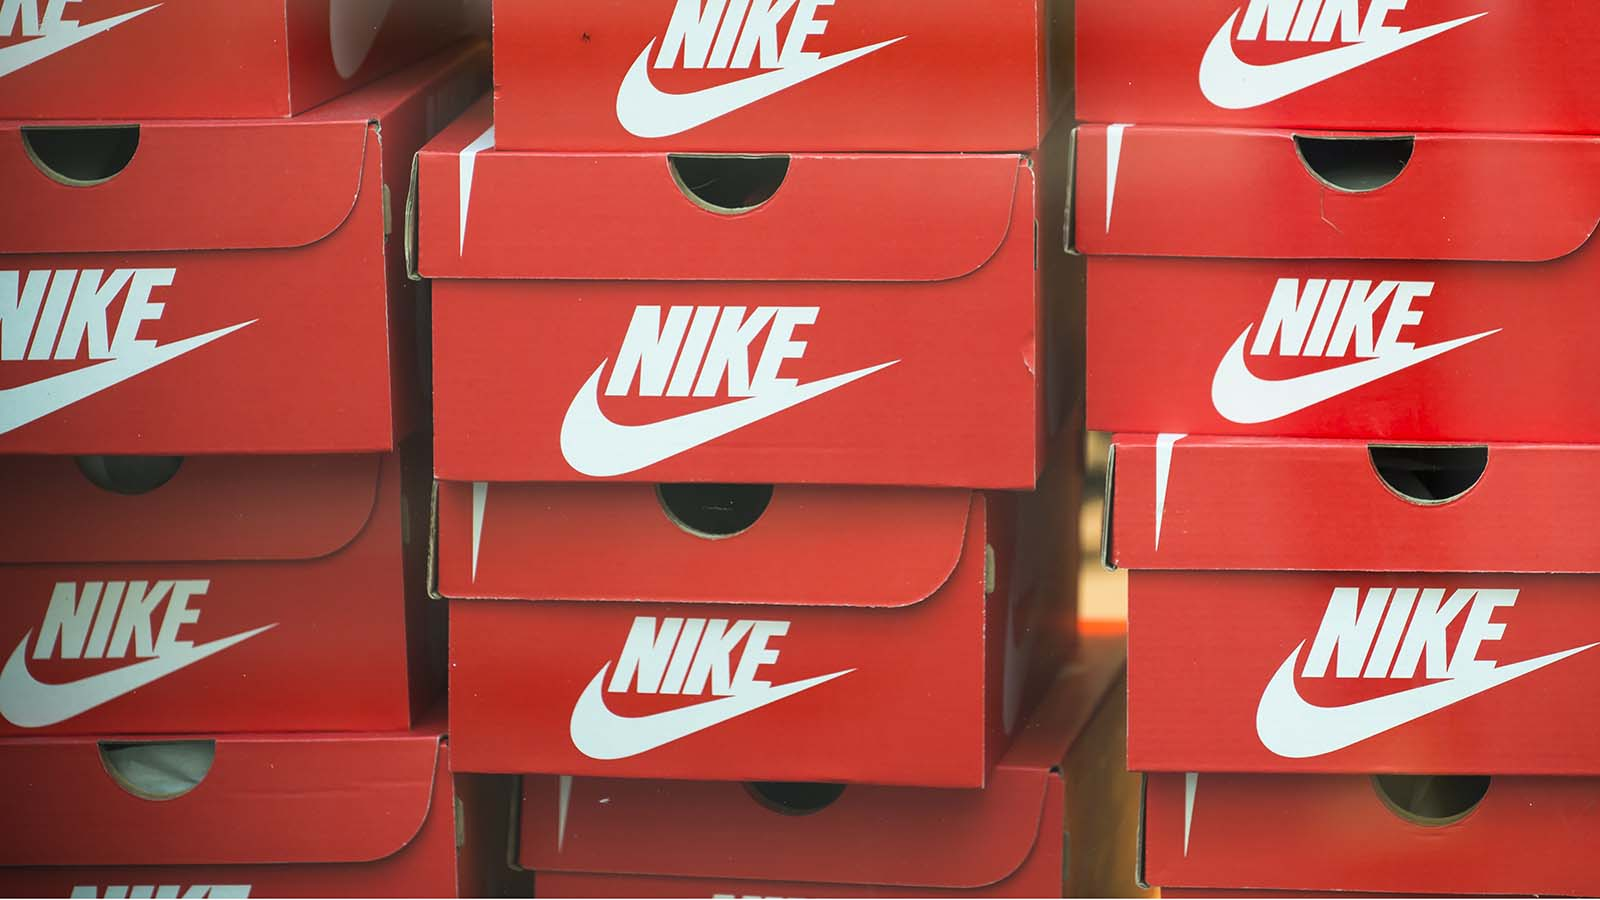 vestido aumento Villano  How Nike's (NKE) Results Can Affect Nike Stock Going Forward | InvestorPlace